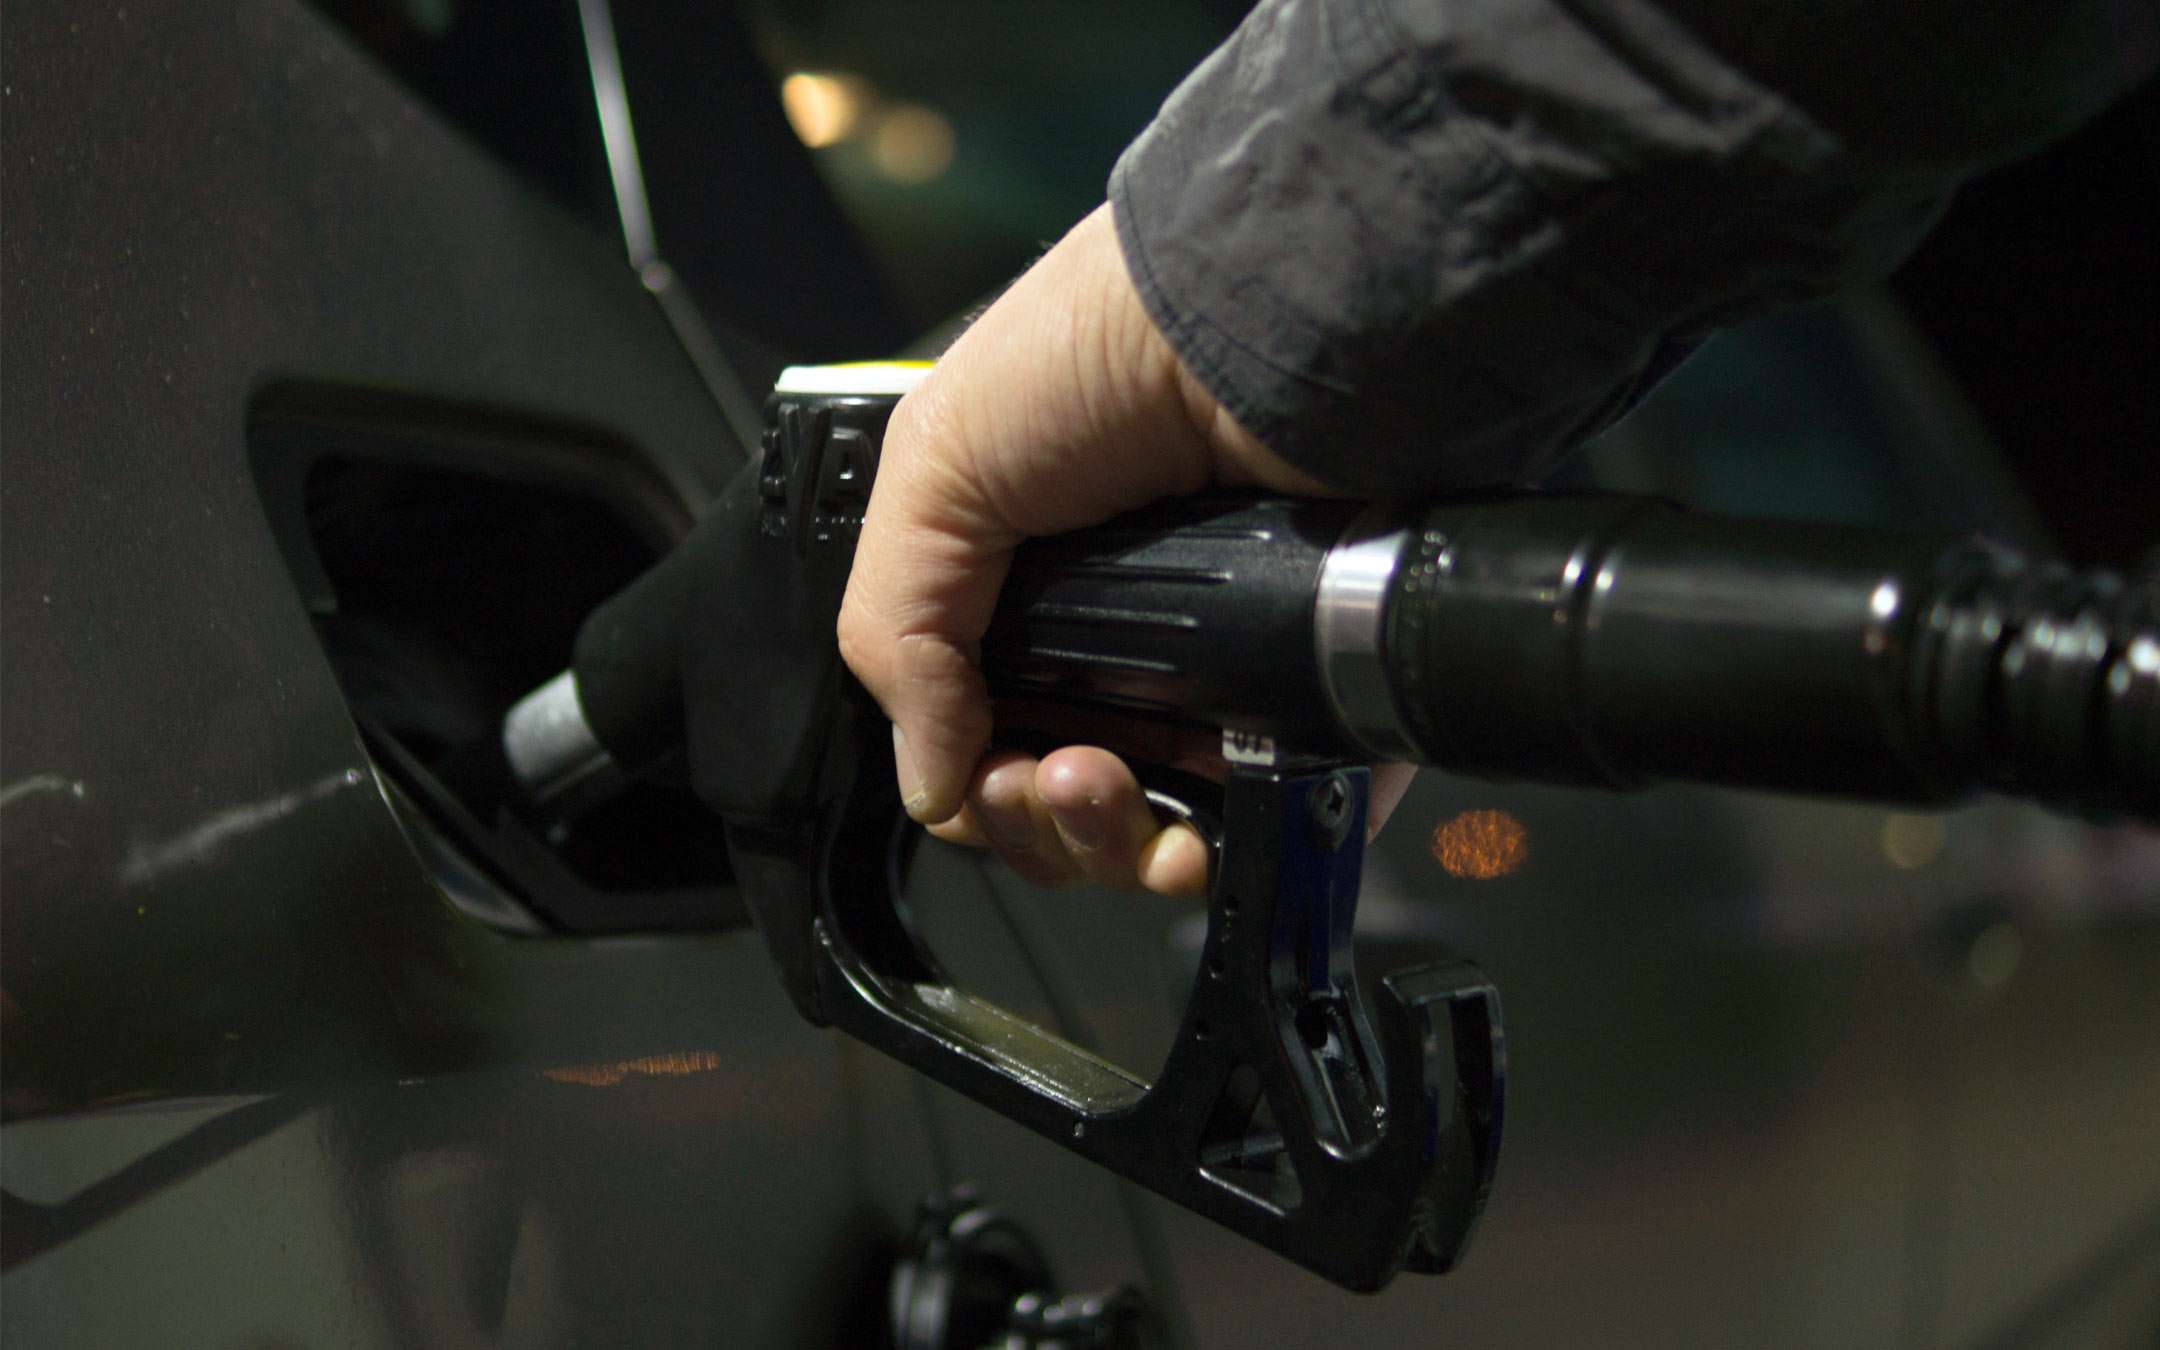 Super Cashback: Rovereto, the gas station does not fit